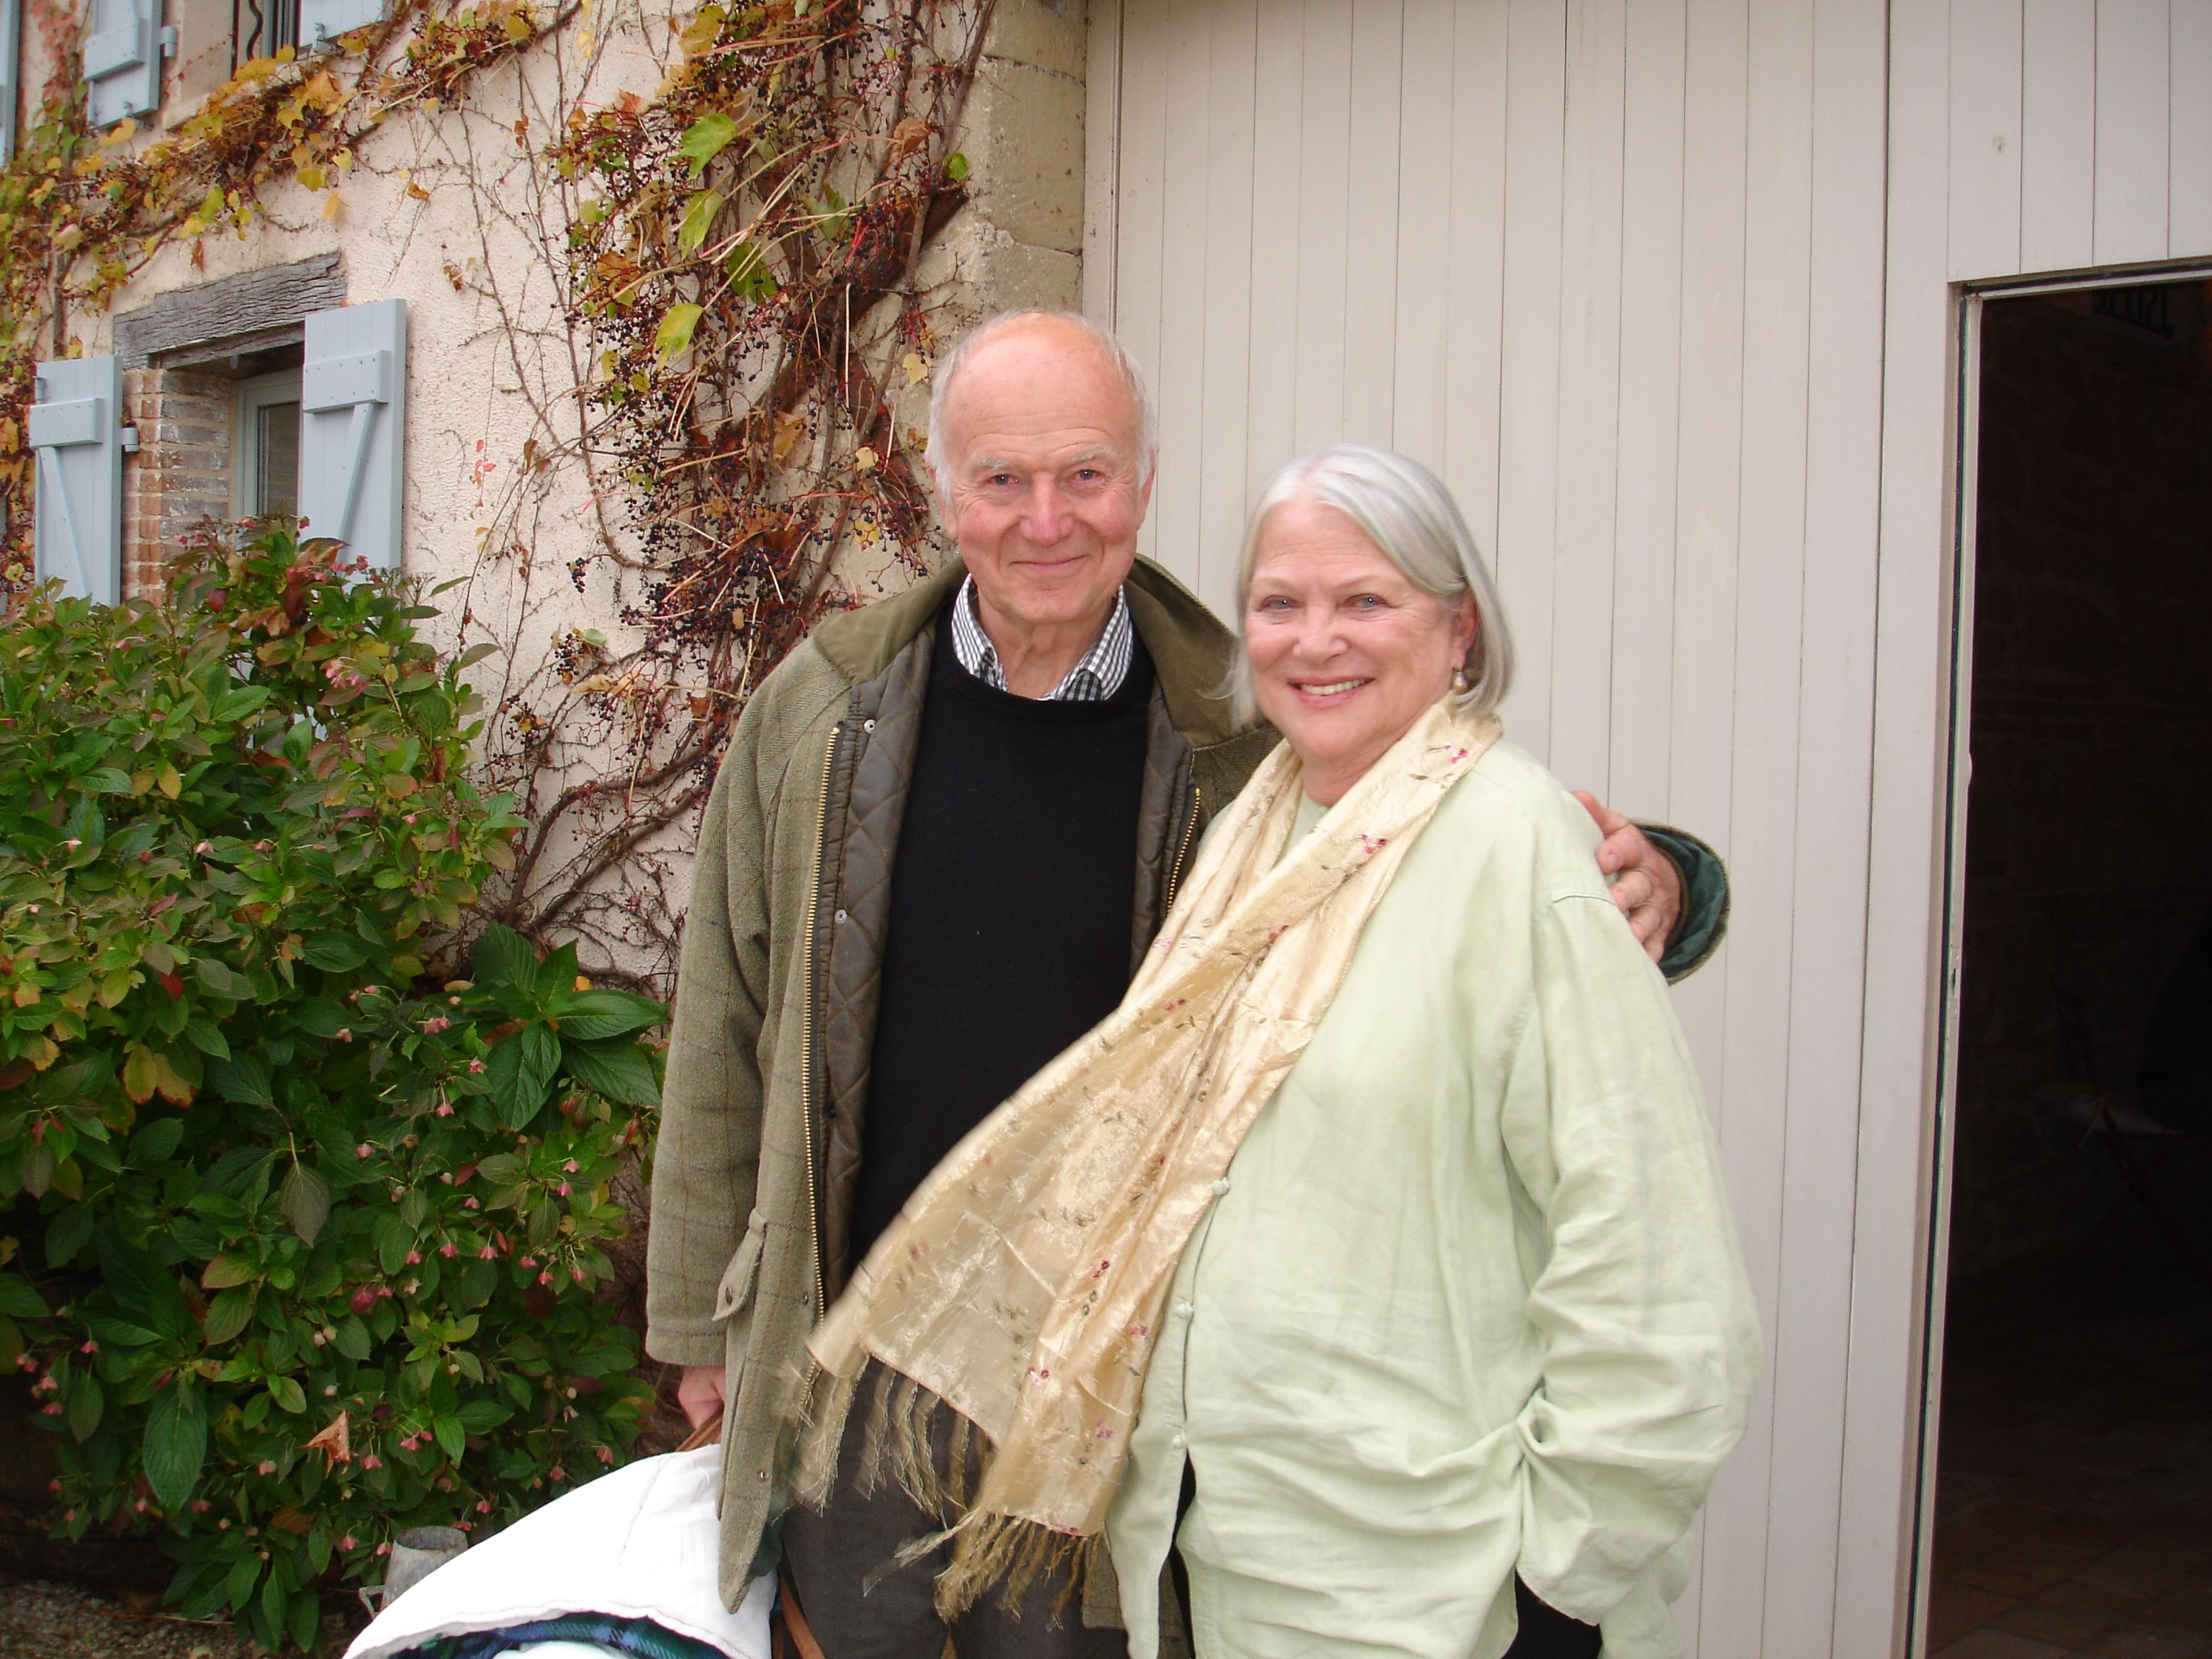 Louise Fletcher and Jerry Bick hugging them in their old age